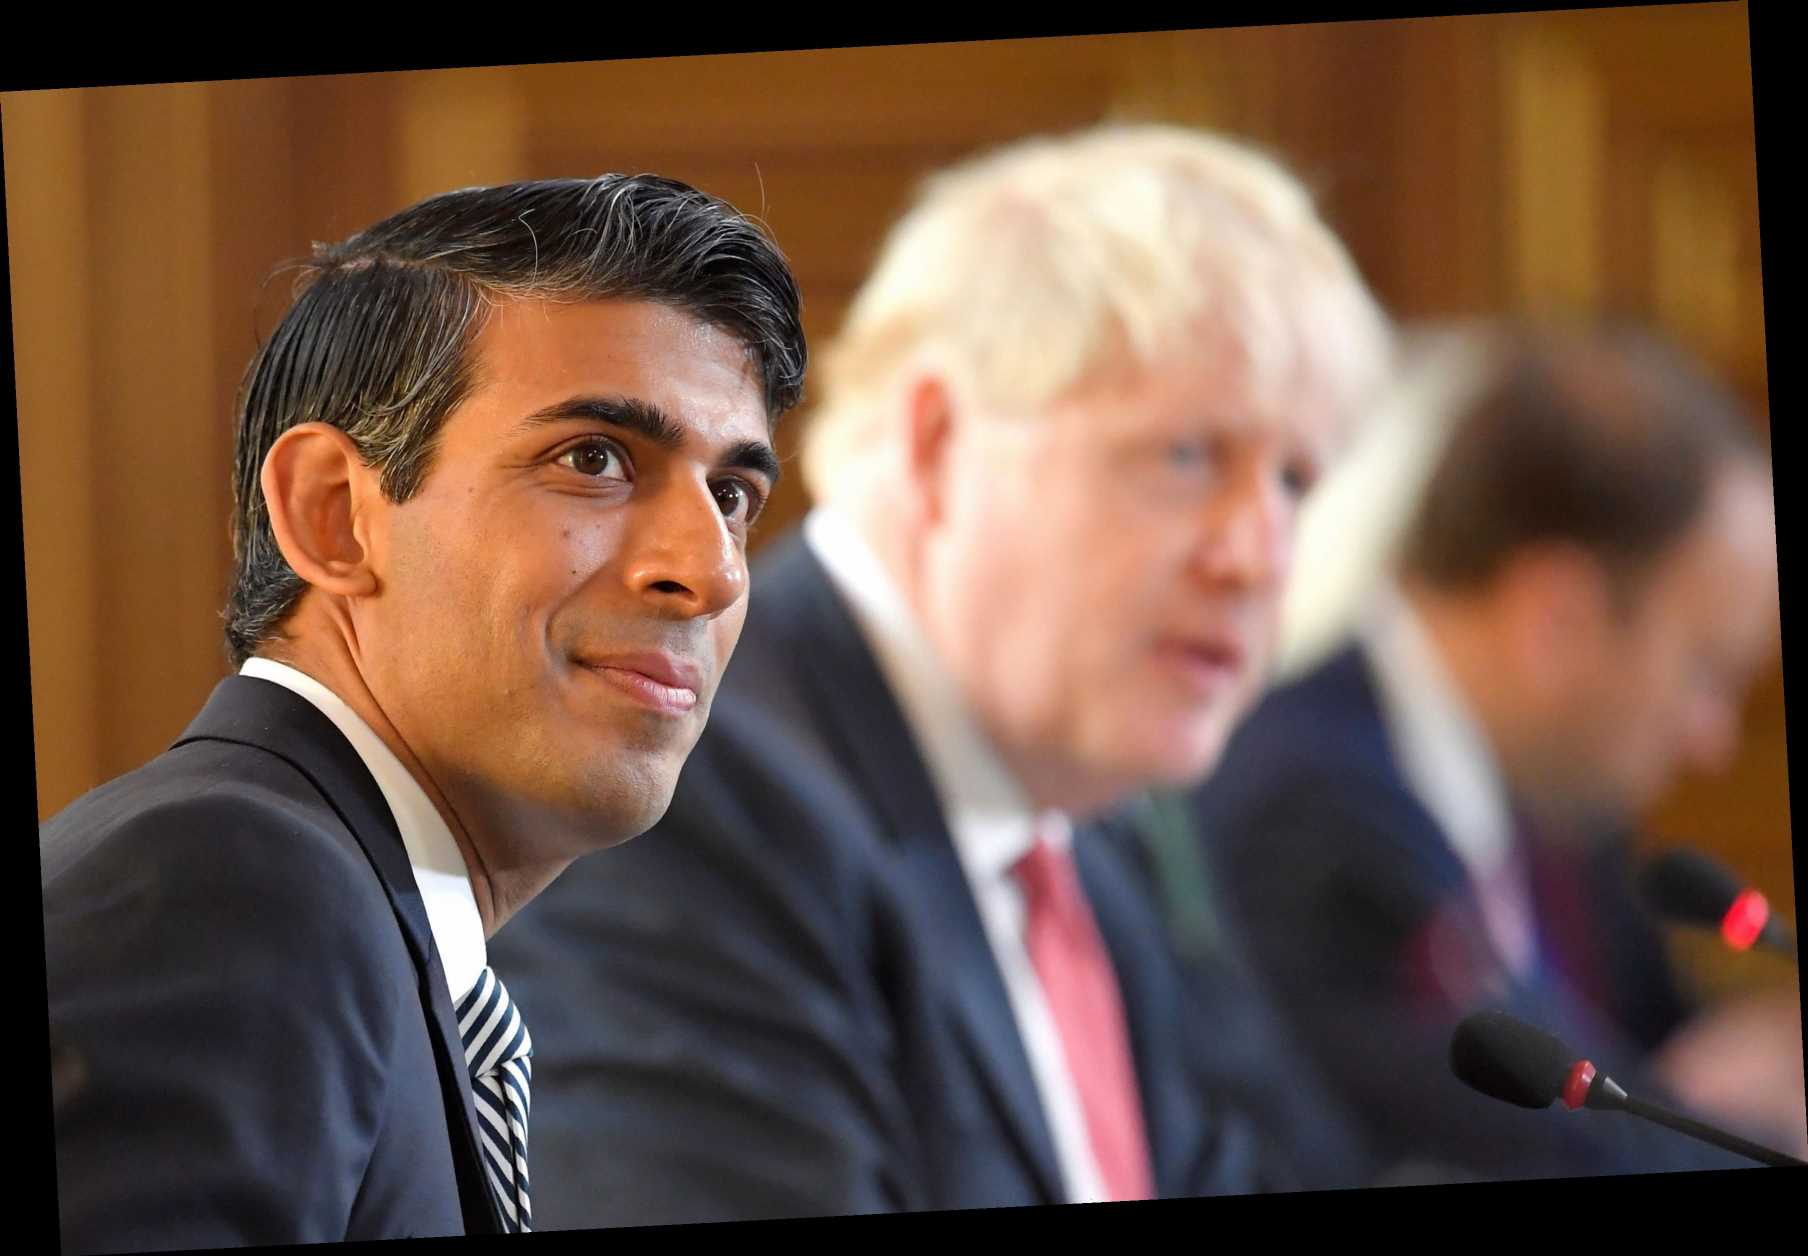 Rishi Sunak Budget announcement 2021: What did the Chancellor say today, Wednesday, March 3?